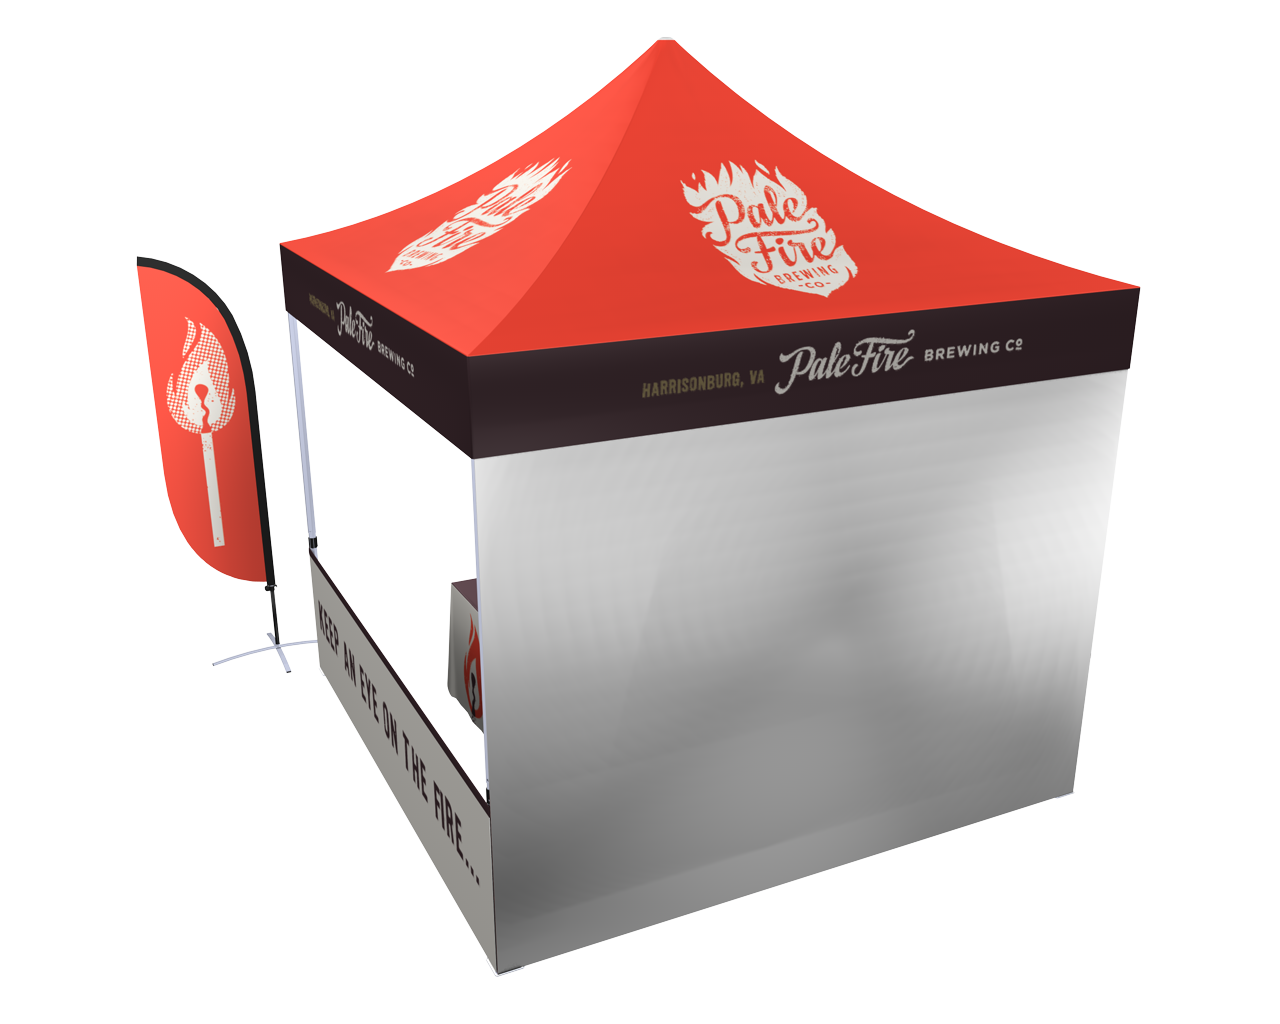 10x10 Pop-up Tent Deluxe Kit